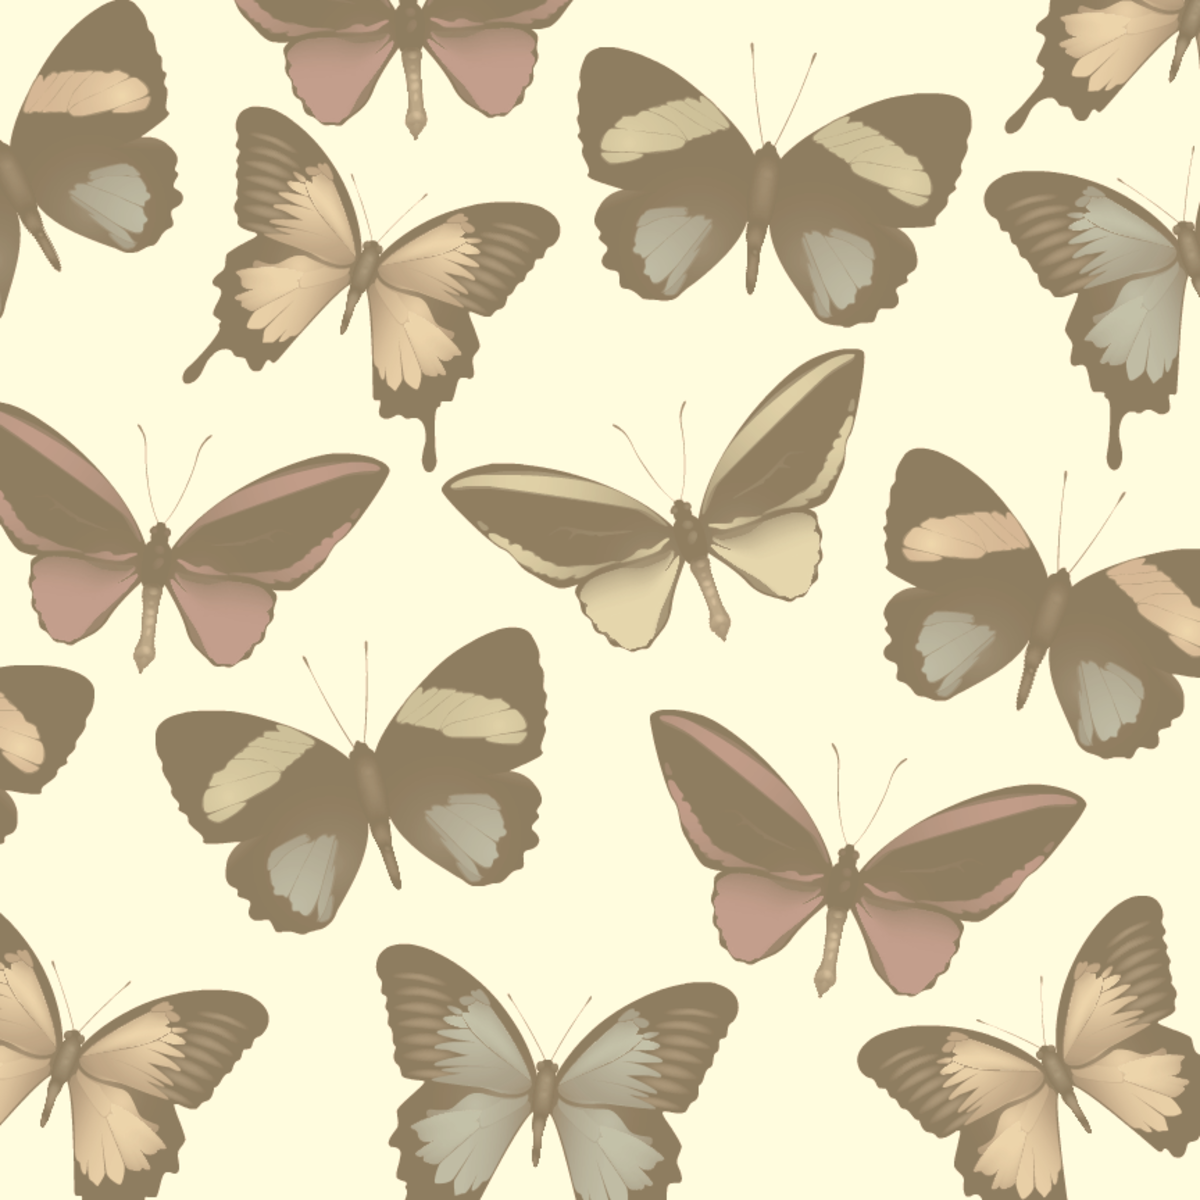 Vintage-look sepia tone butterfly scrapbook paper